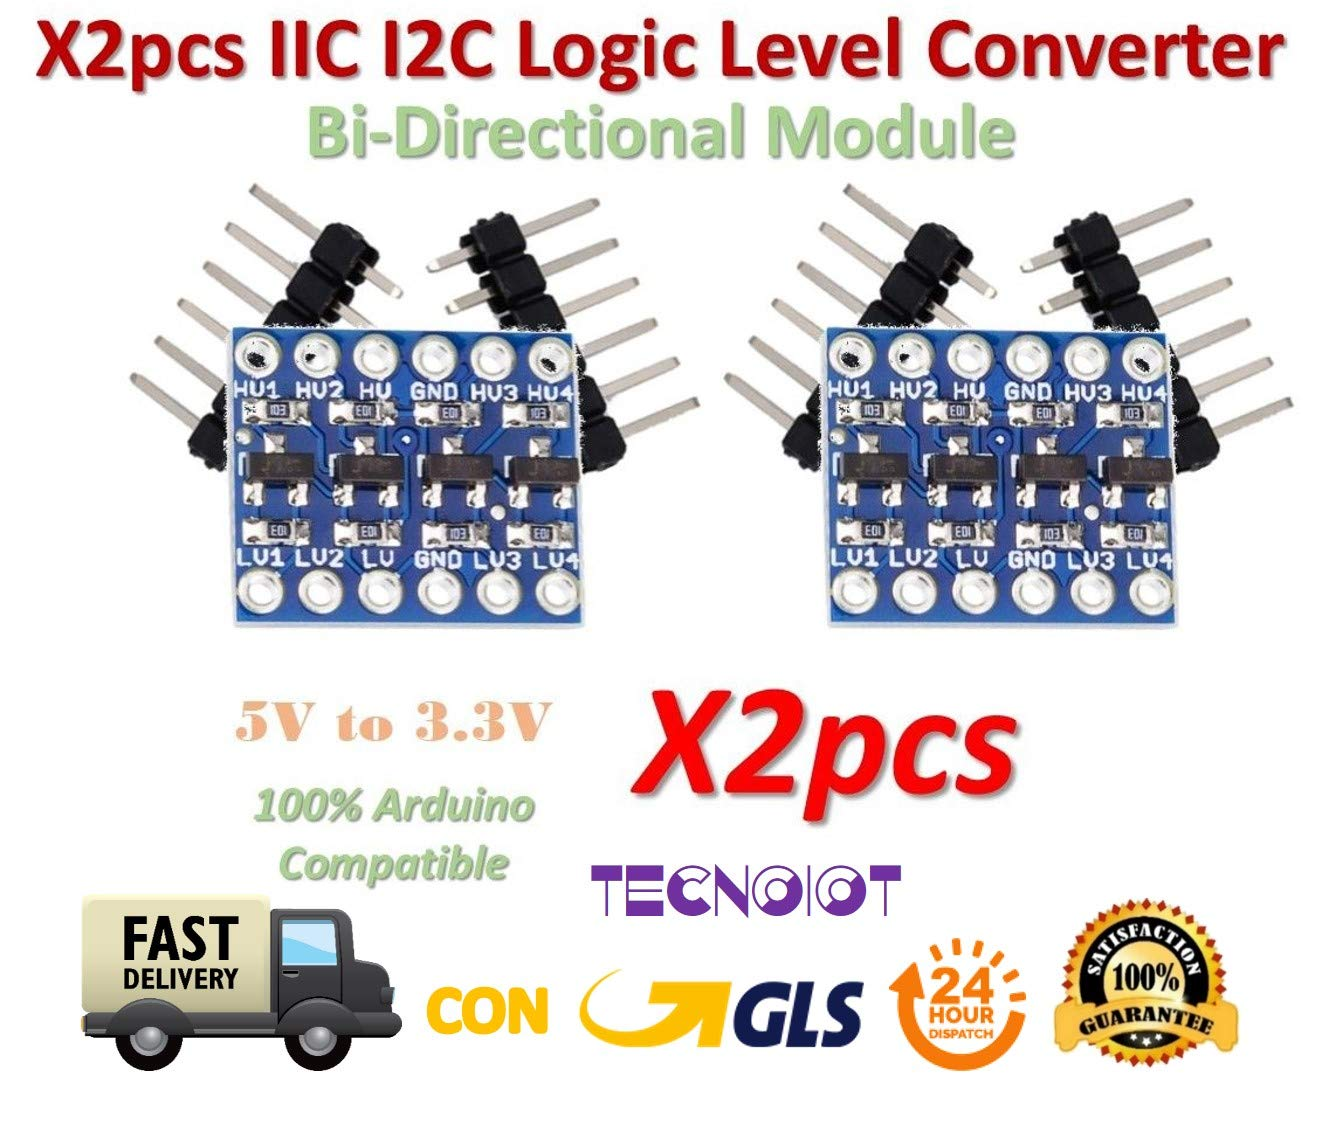 iHaospace 5 Pcs 4 Channel IIC I2C Logic Level Converter Bi-Directional Module 5V to 3.3V For Arduino